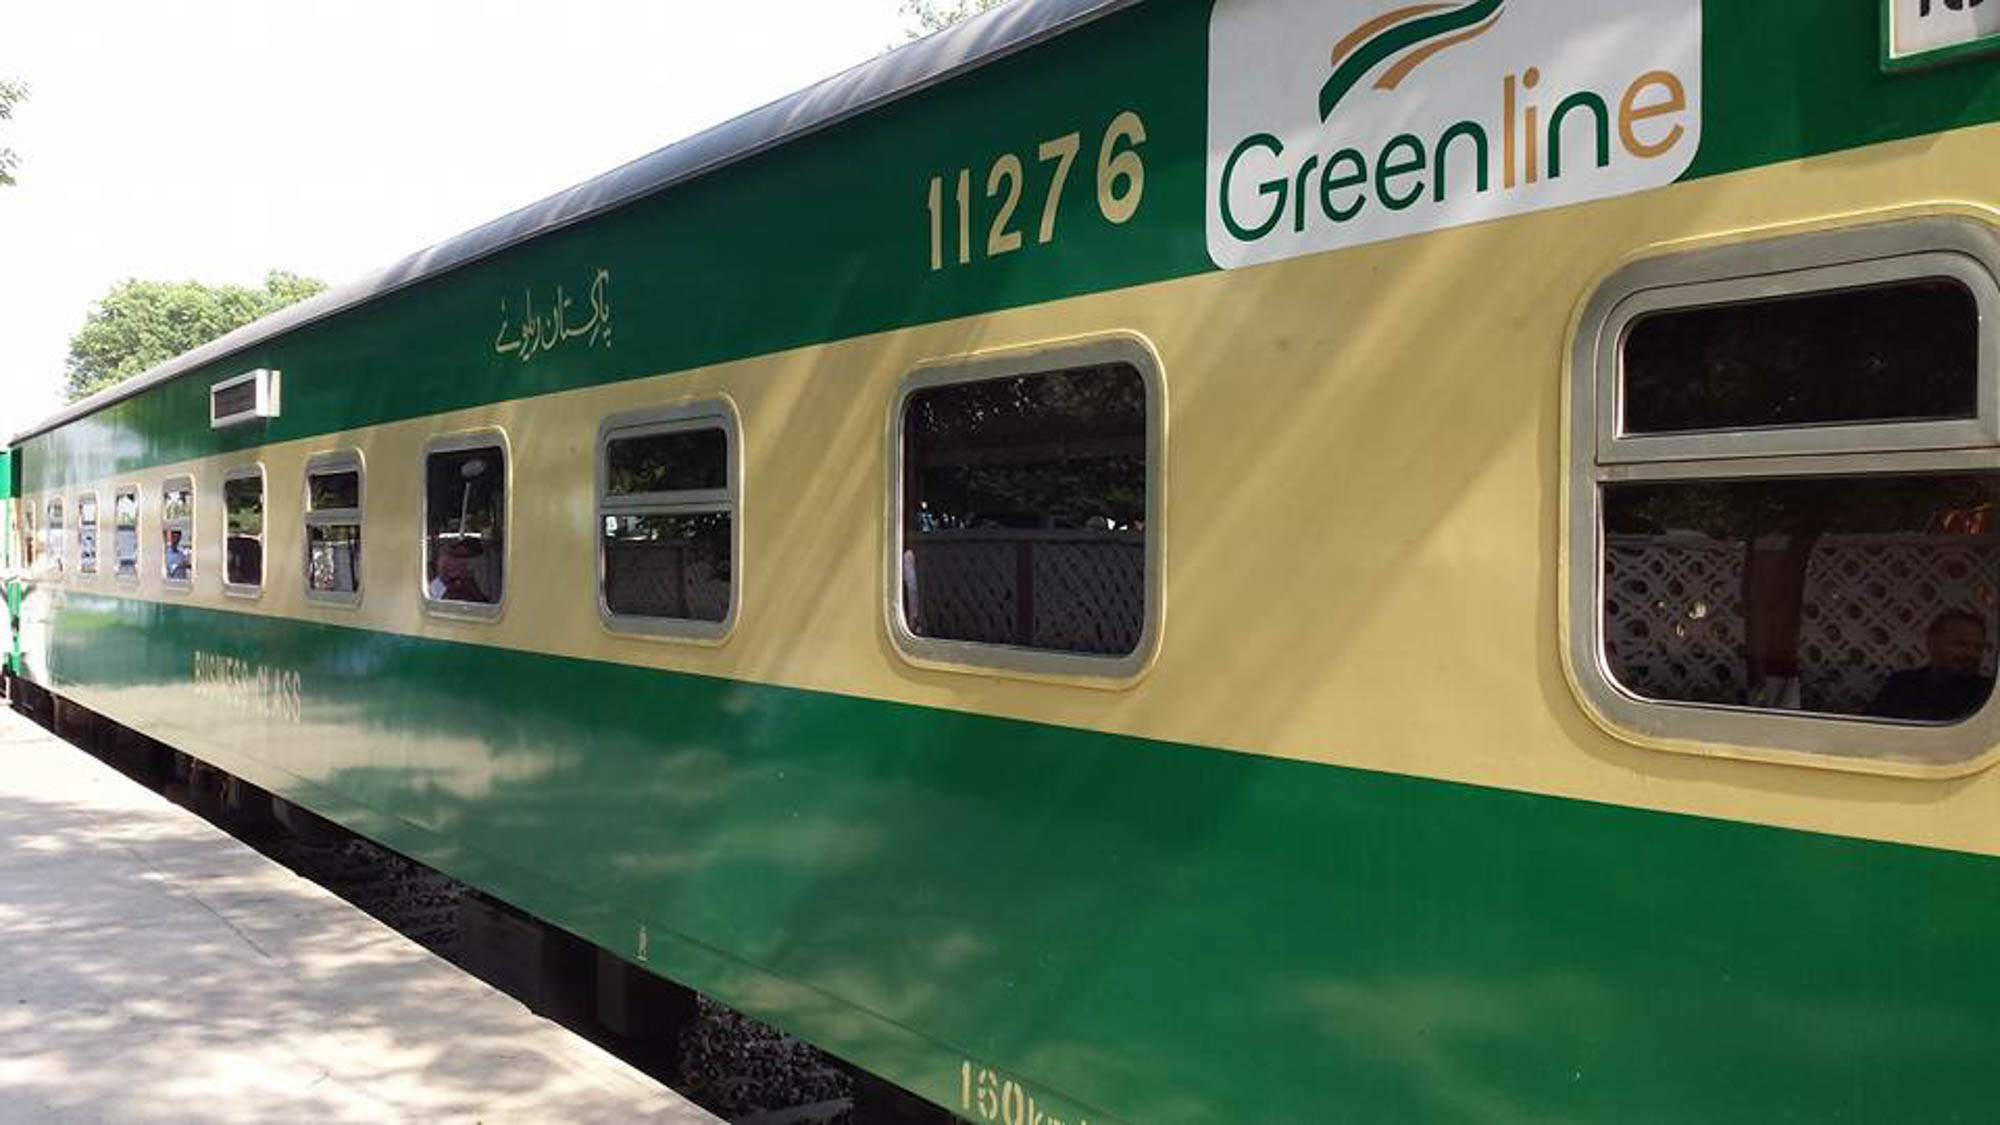 Train Fare Economy and Business Class in Pakistan February. 2021